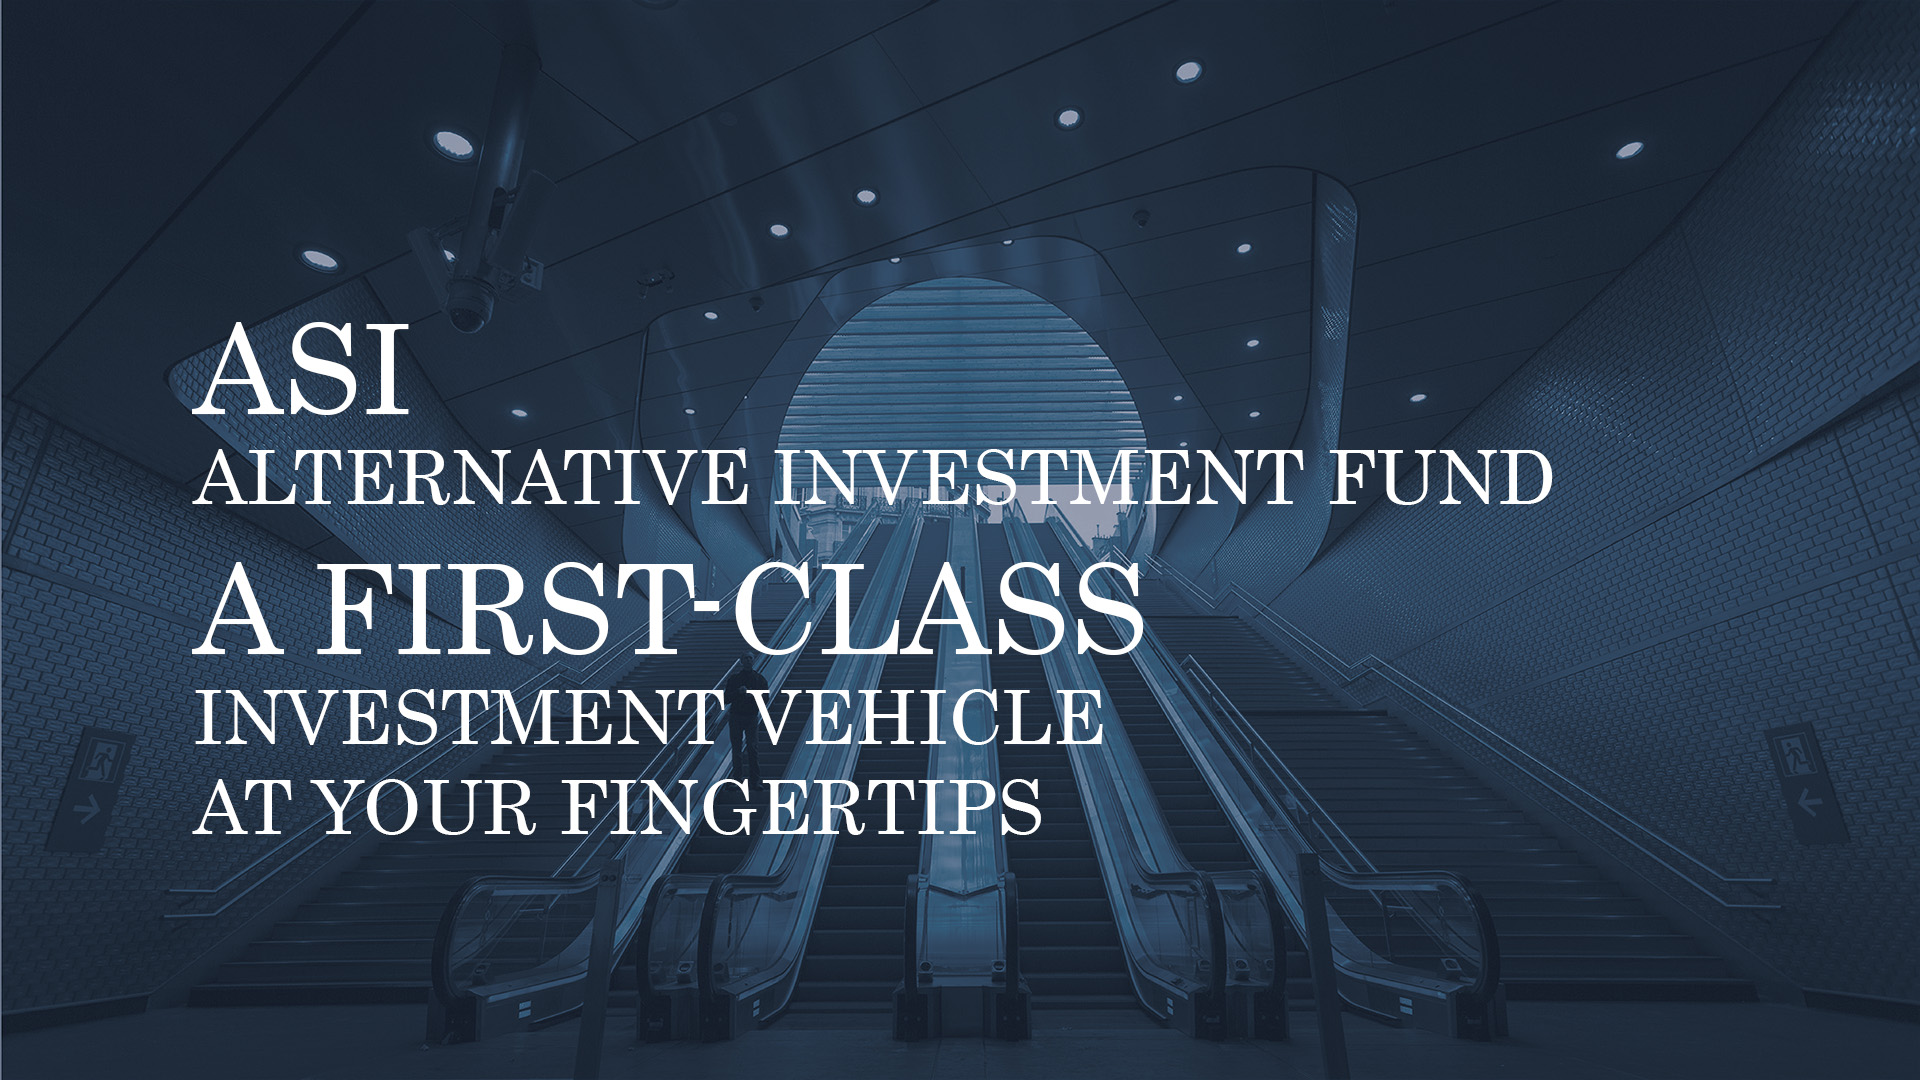 ALTERNATIVE INVESTMENT FUND (ASI) – A FIRST-CLASS INVESTMENT VEHICLE AT YOUR FINGERTIPS